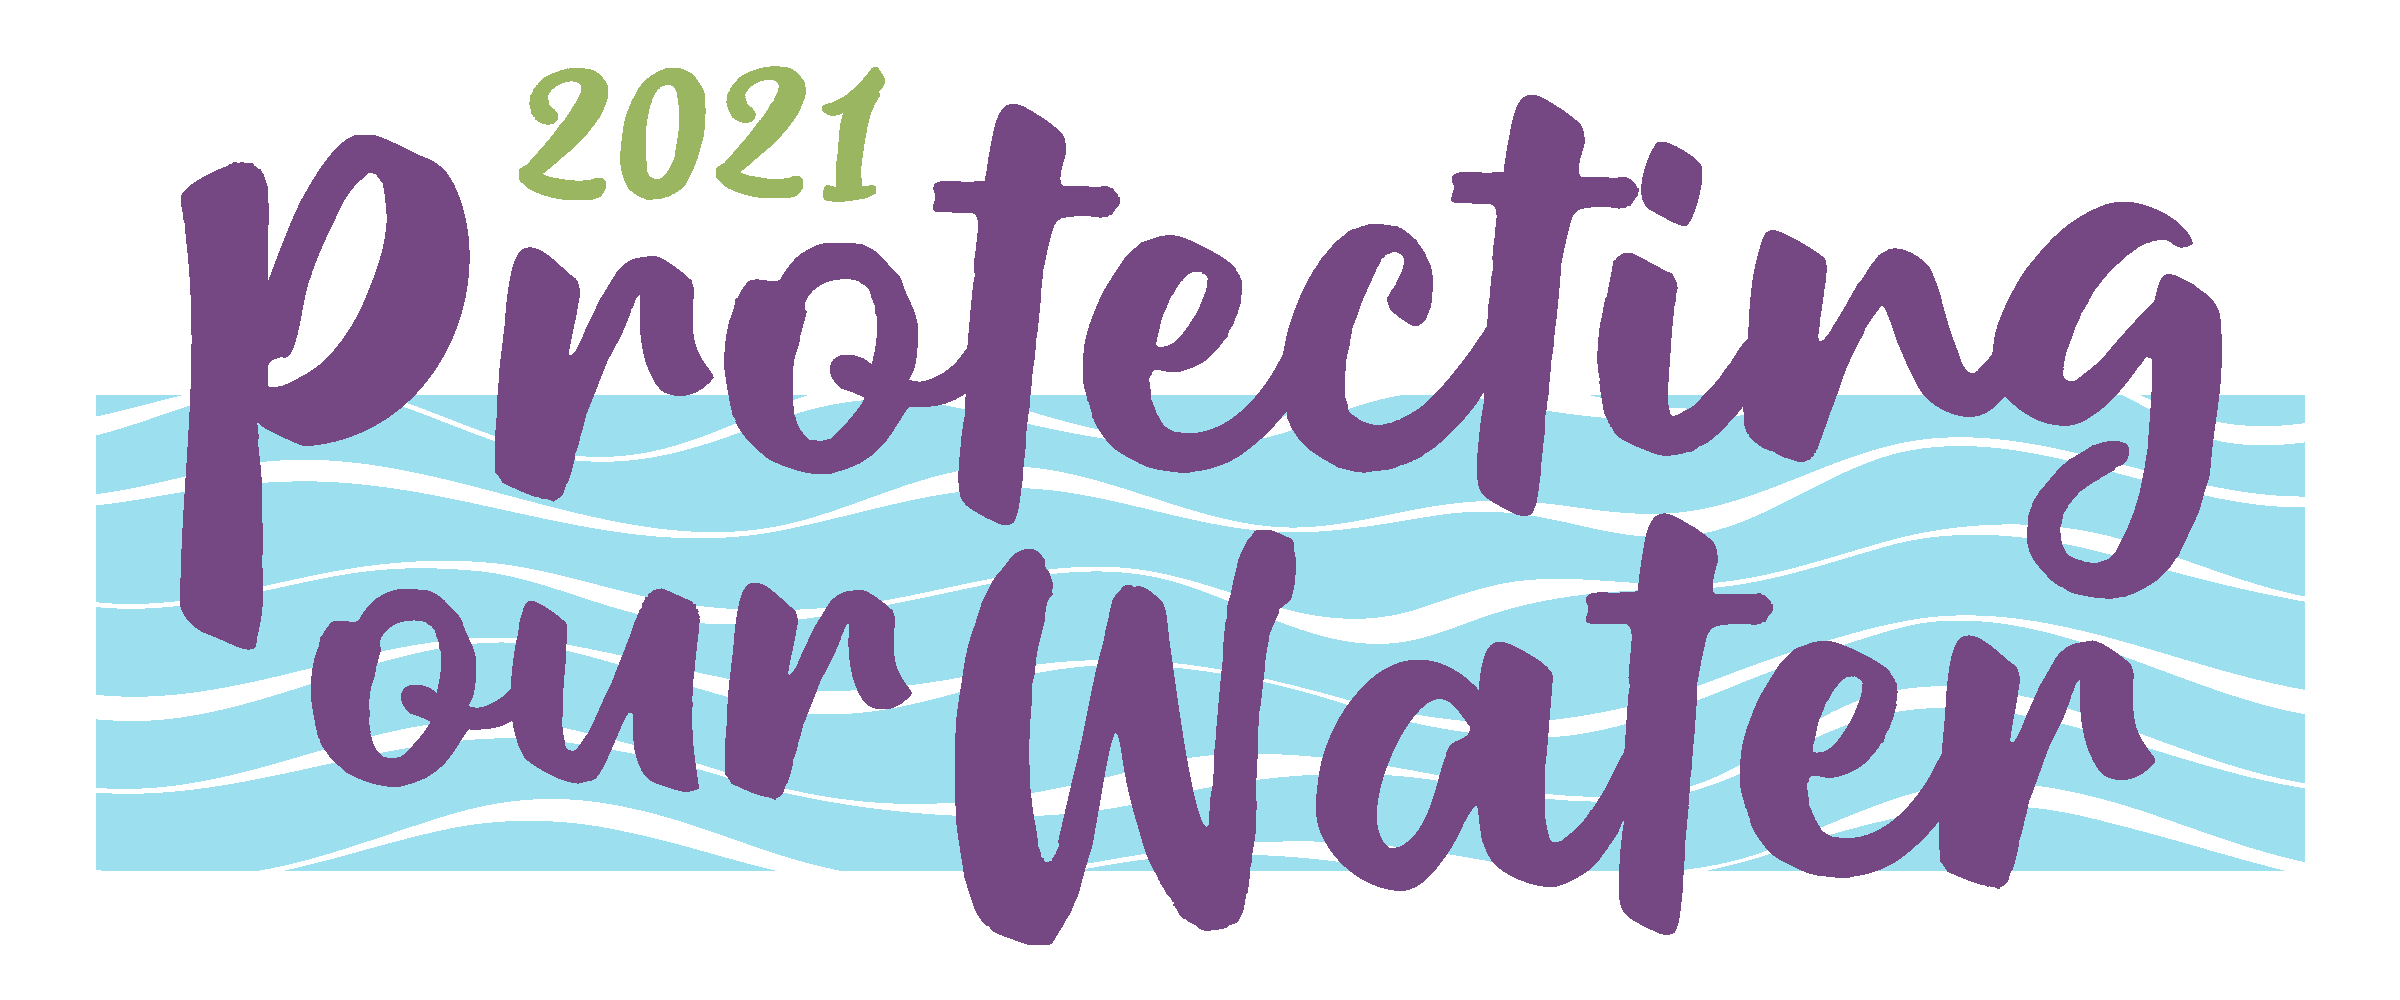 Protecting Our Water -- 2021. Get Your Tickets Today!